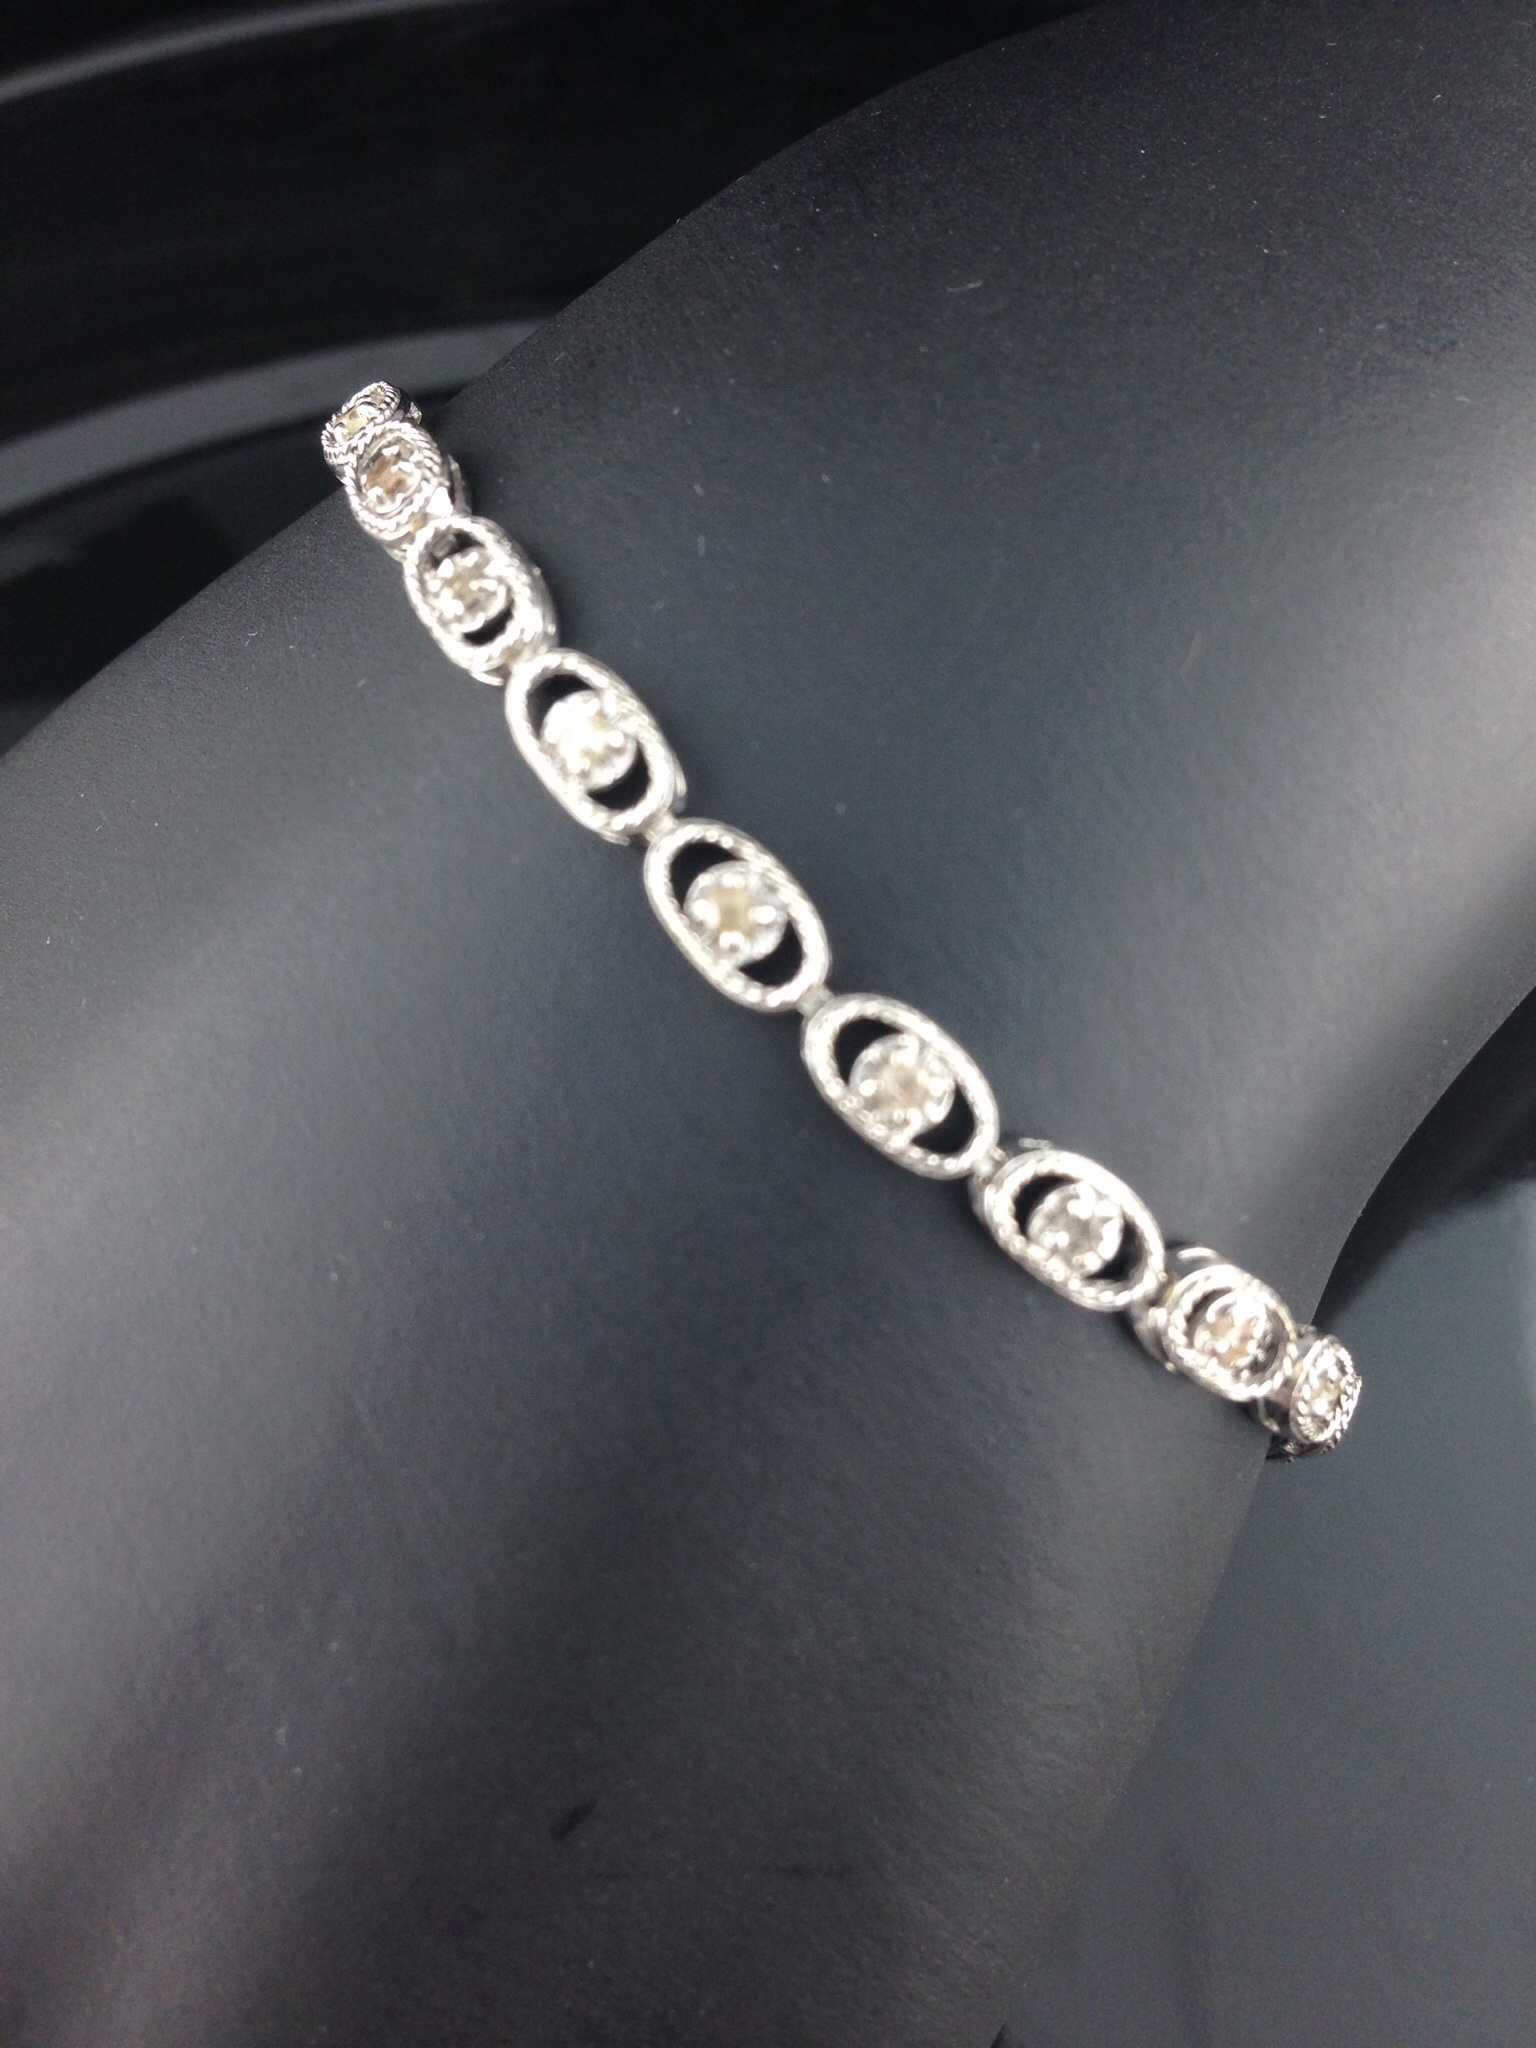 0.25 CT. Diamond Bracelet